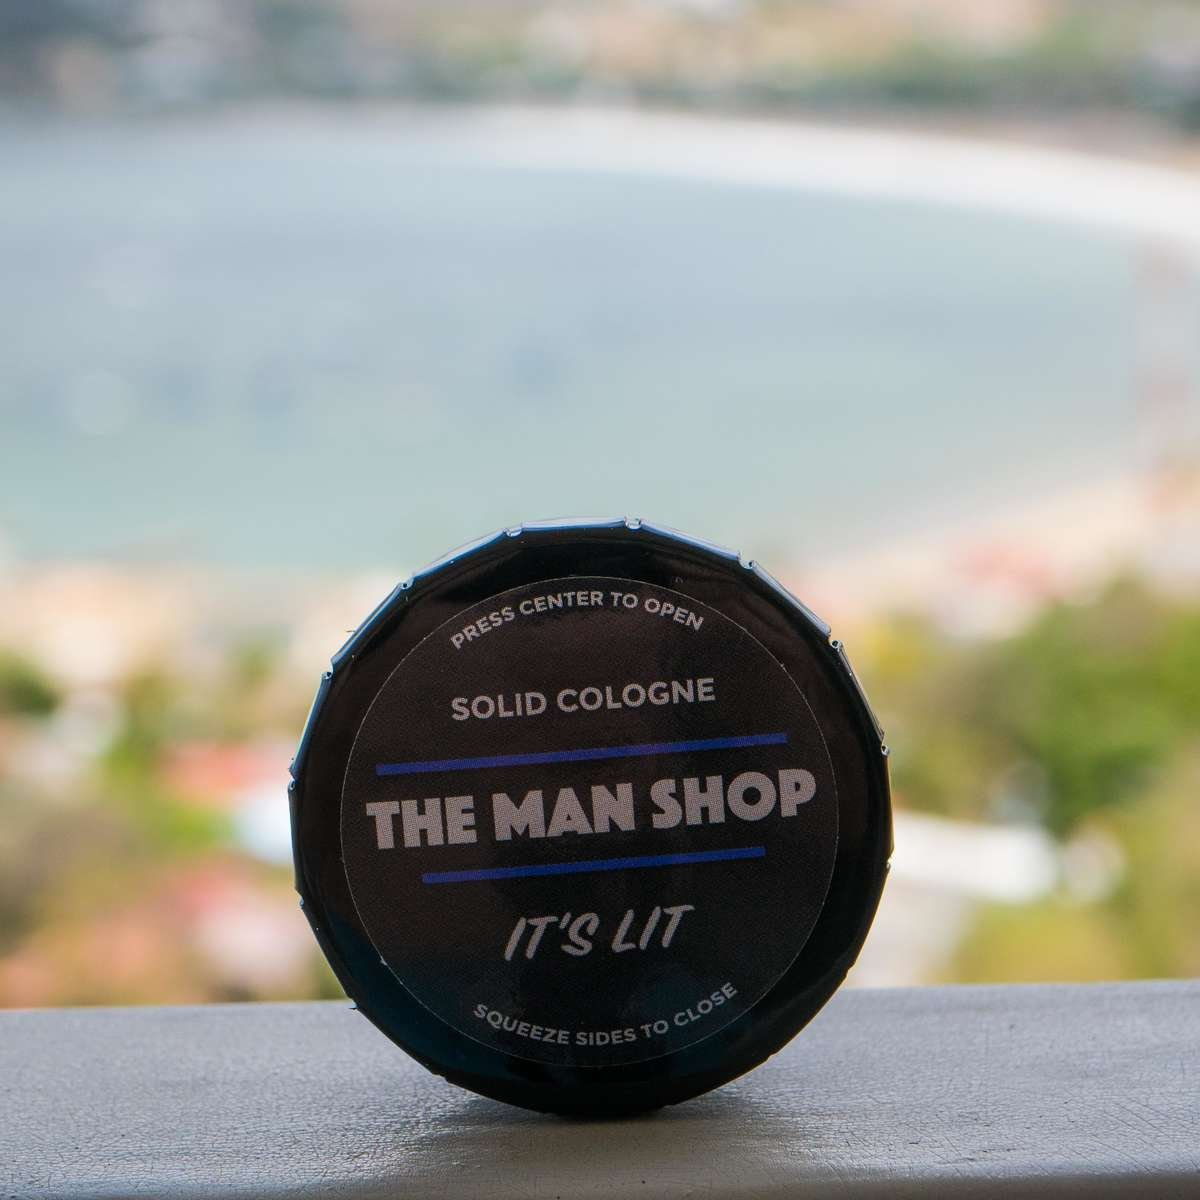 The Man Shop Solid Cologne